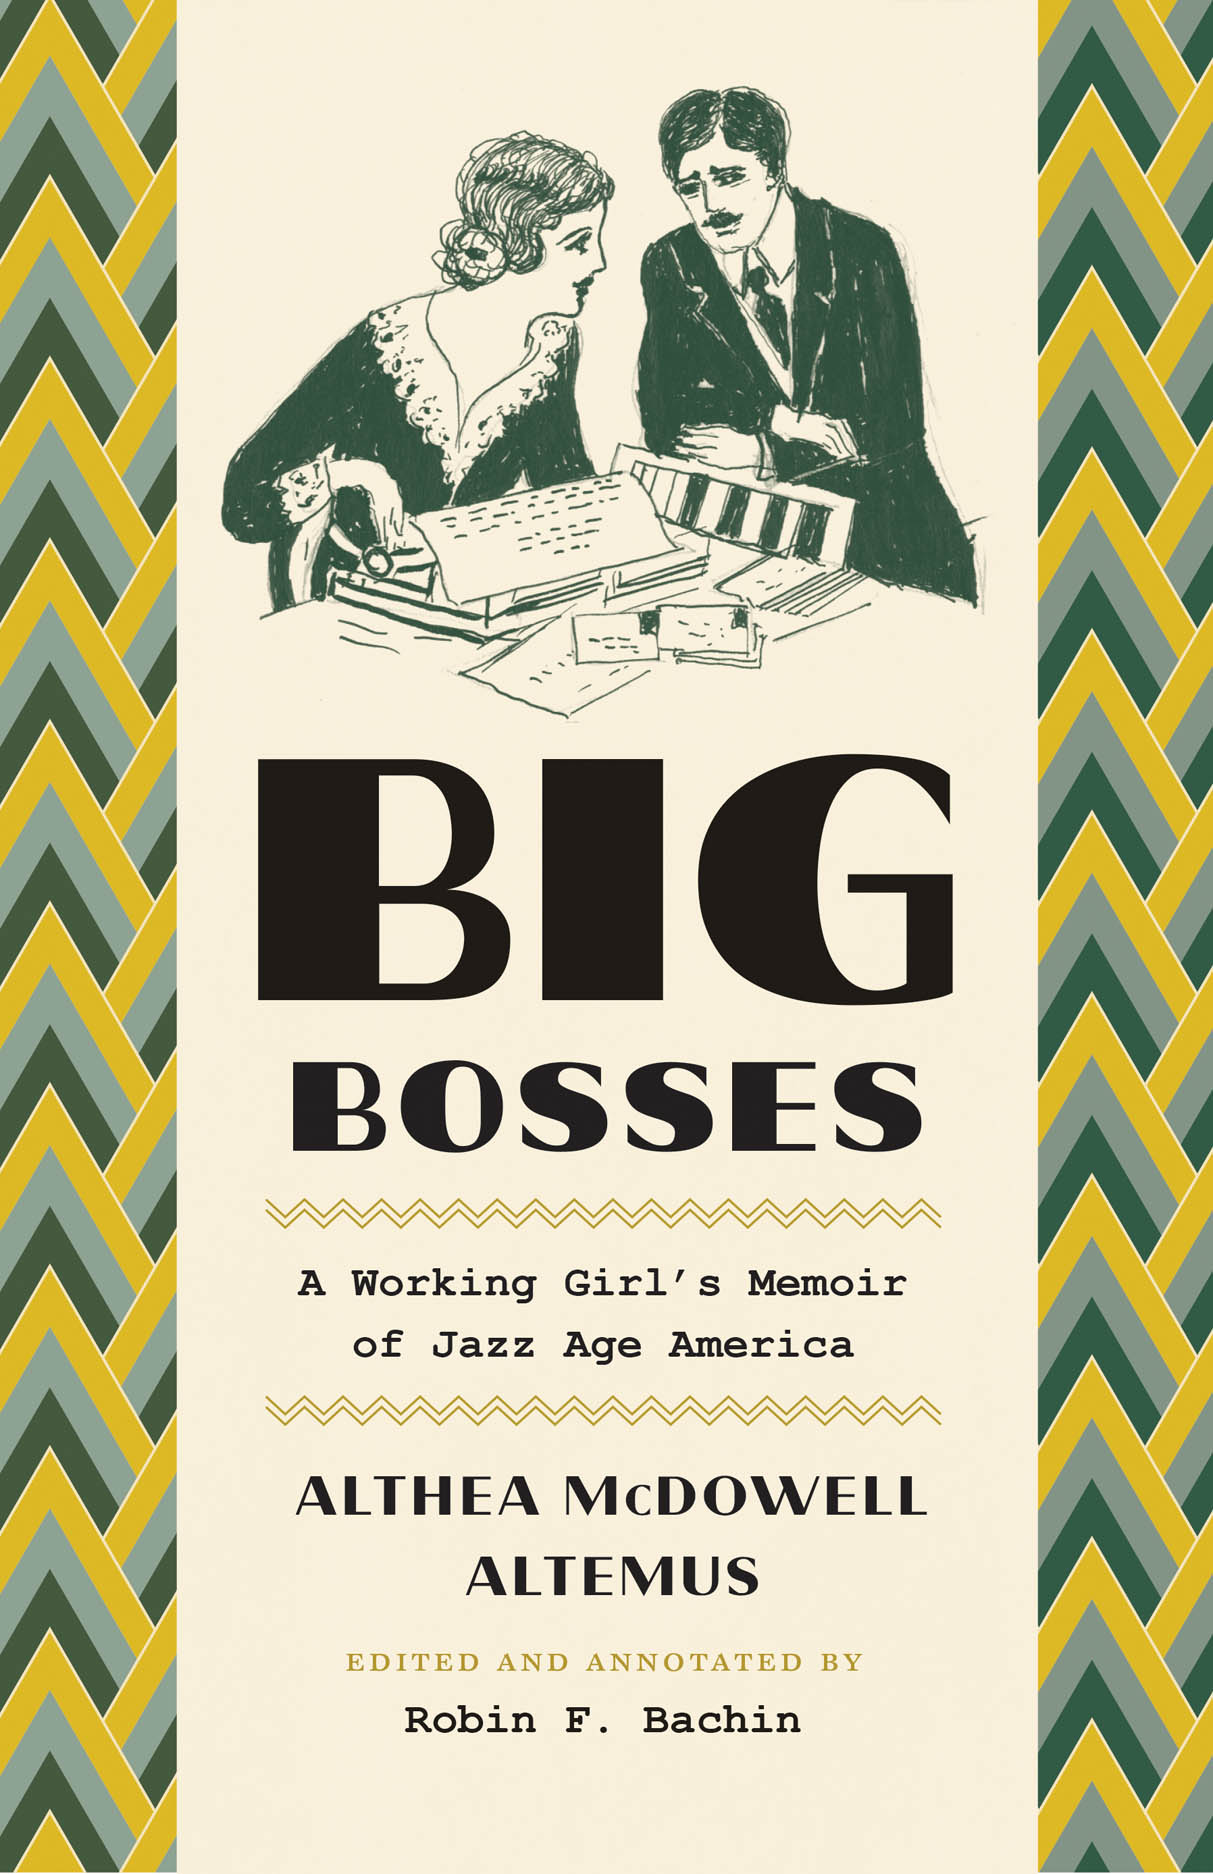 Big Bosses: A Working Girl's Memoir of Jazz Age America